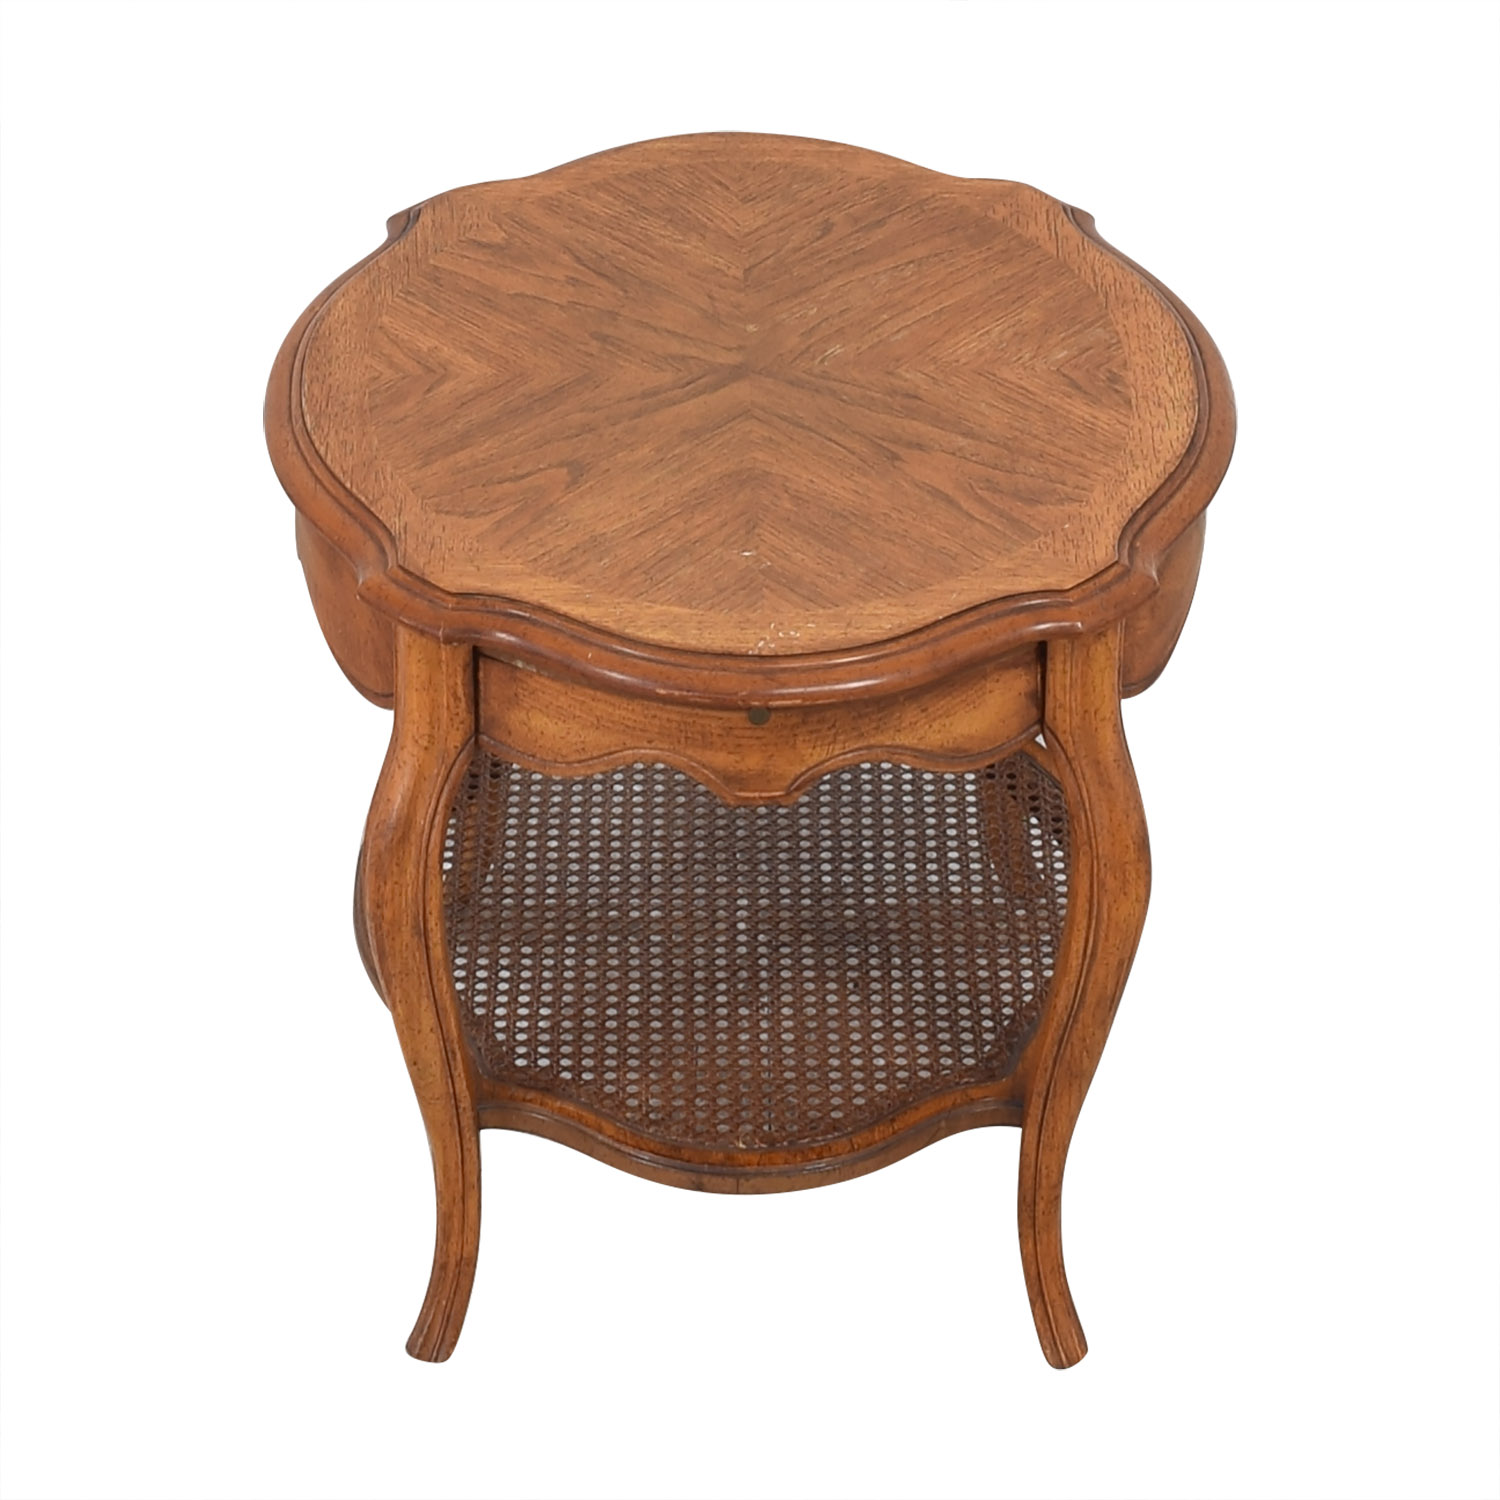 Vintage End Table with Pull Out Tray